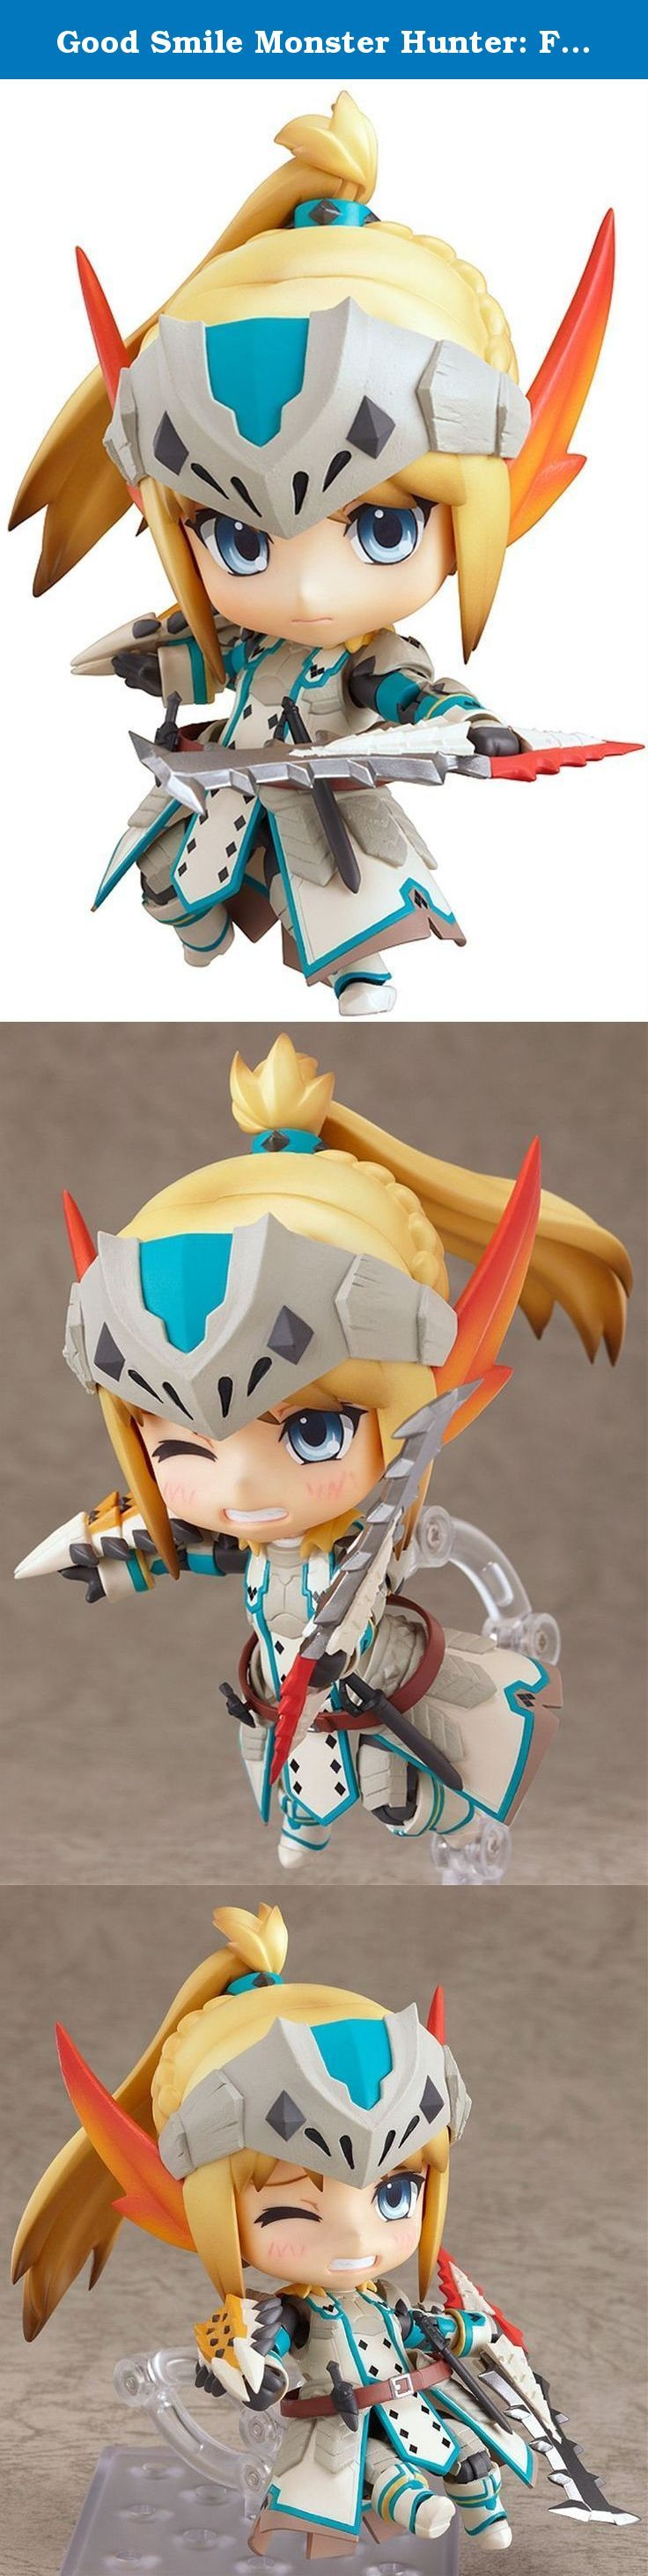 Good Smile Monster Hunter: Female Swordsman Nendoroid Action Figure Bario X Edition. From Good Smile Company. From the popular Nintendo 3DS game, 'Monster Hunter Tri G' comes a Nendoroid of the female swordsman wearing the 'Bario X' series of armor made from the powerful ice-fanged Barioth! The unique design of the armor as well as the one-handed sword she wields have all been faithfully sculpted down to Nendoroid size! The bottom of the coat is separated into different parts, allowing…